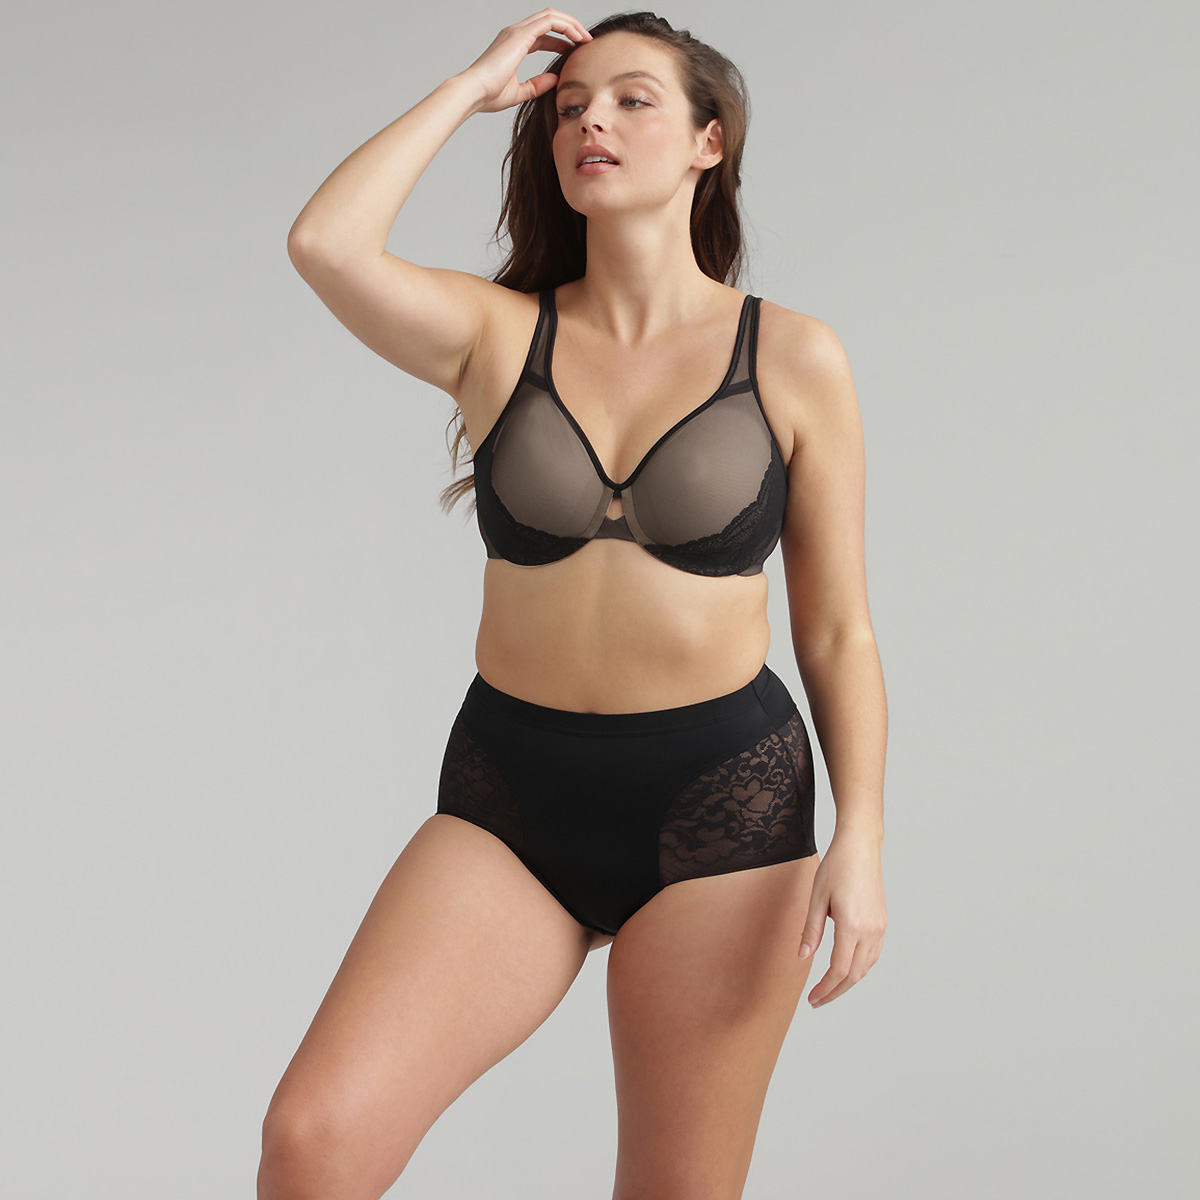 Minimiser bra in black Expert In Silhouette, , PLAYTEX